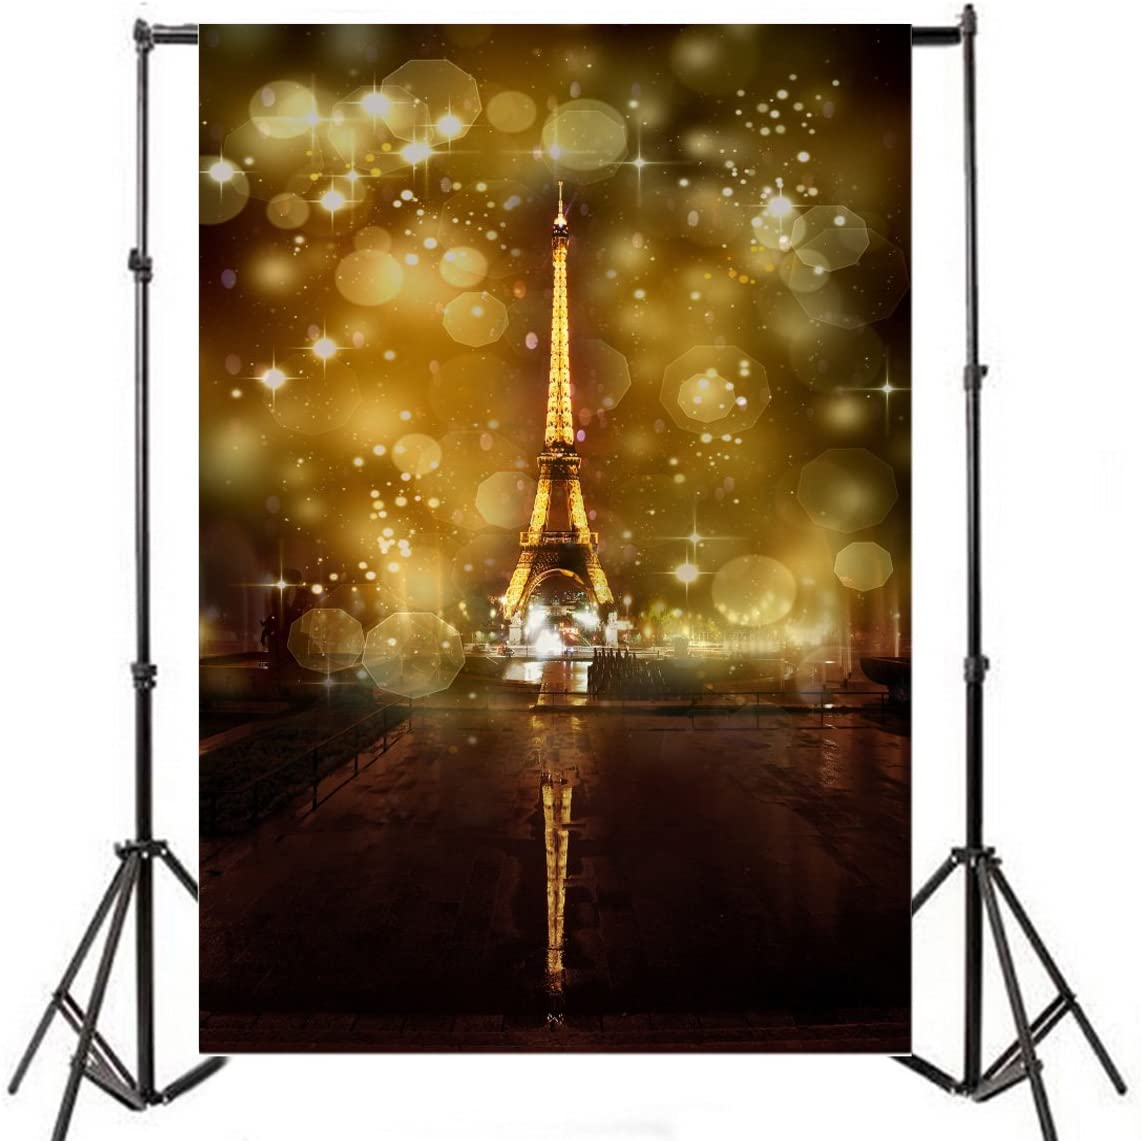 Yeele 5x7ft Romantic Eiffel Tower Photography Backdrop Vinyl French Landmark Paris Abstract Hazy Sequins Bokeh Glitter Photo Background Party Photo Booth Video Shoot Studio Props